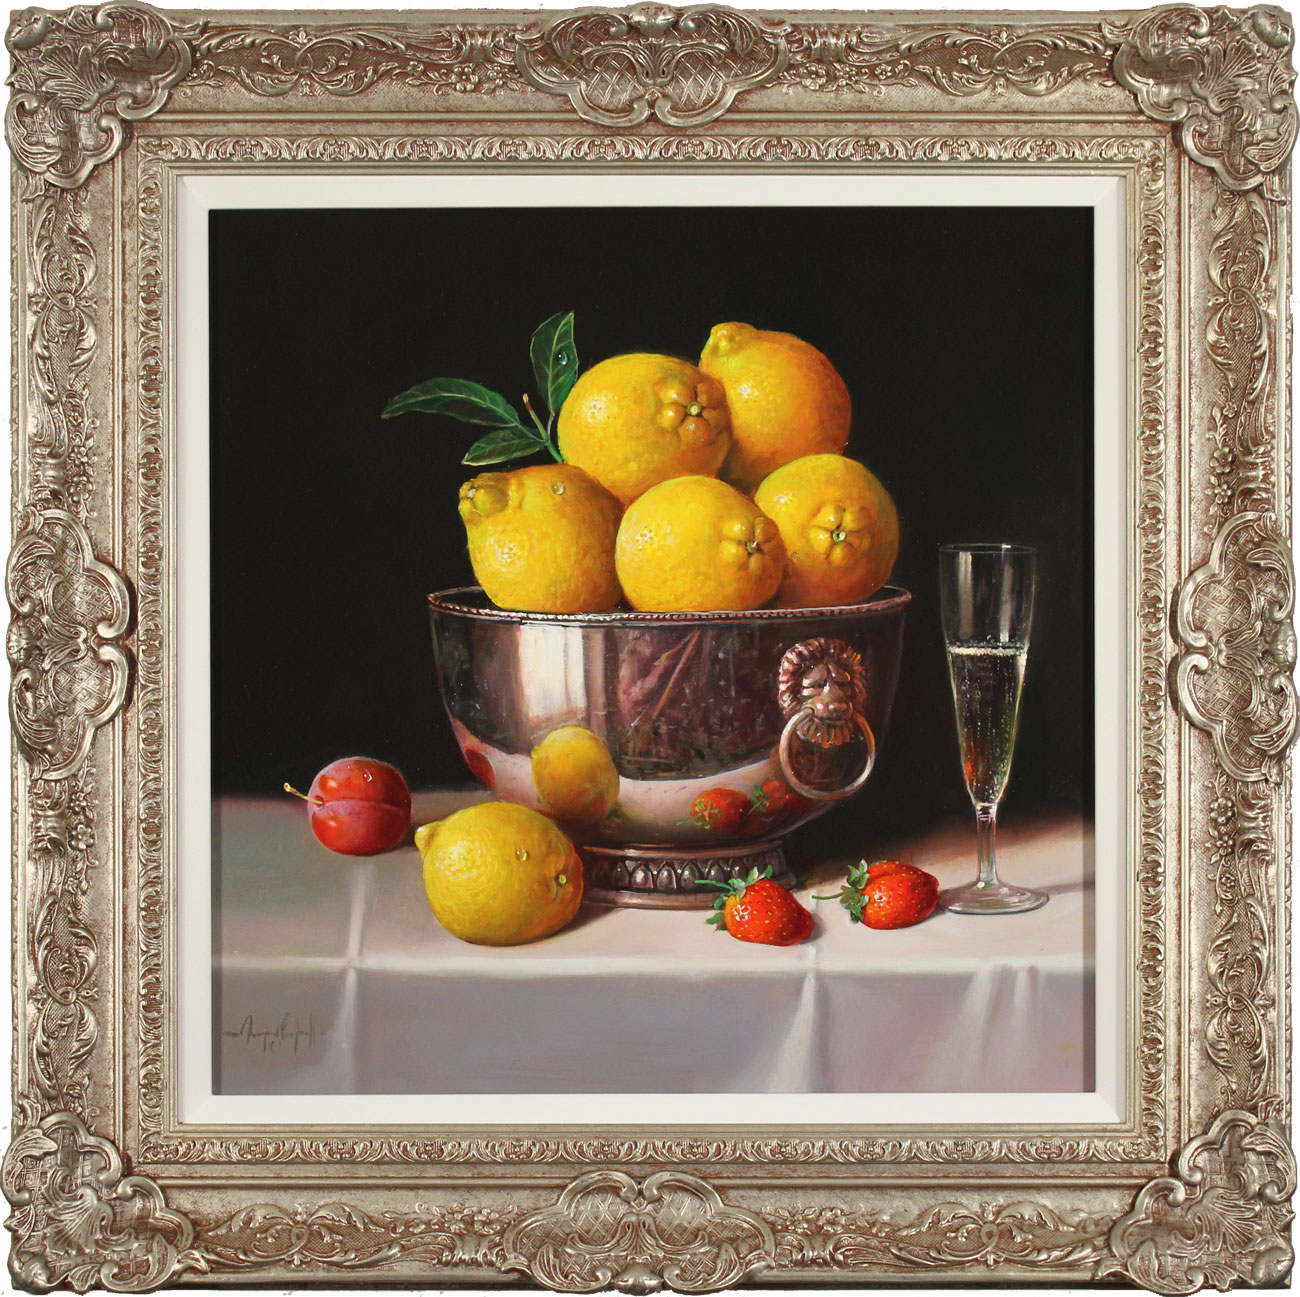 Raymond Campbell, Original oil painting on panel, Bowl of Lemons, click to enlarge